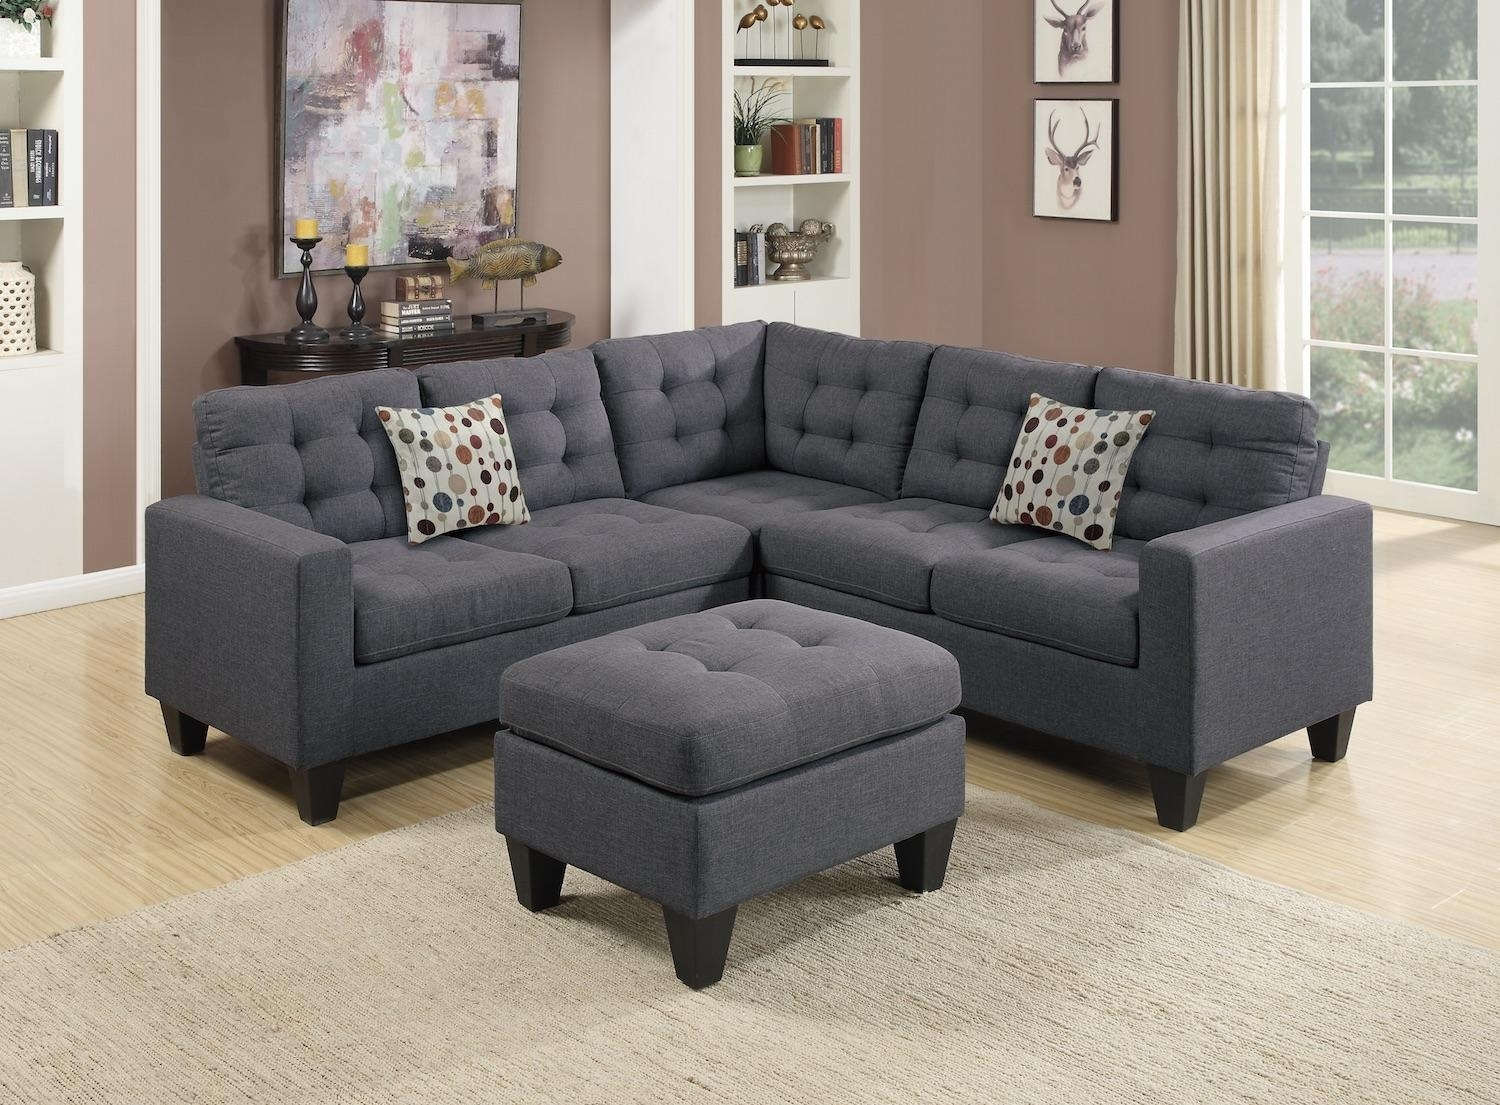 wayfair furniture sofa modern living room sofas 2018 latest sectional ideas